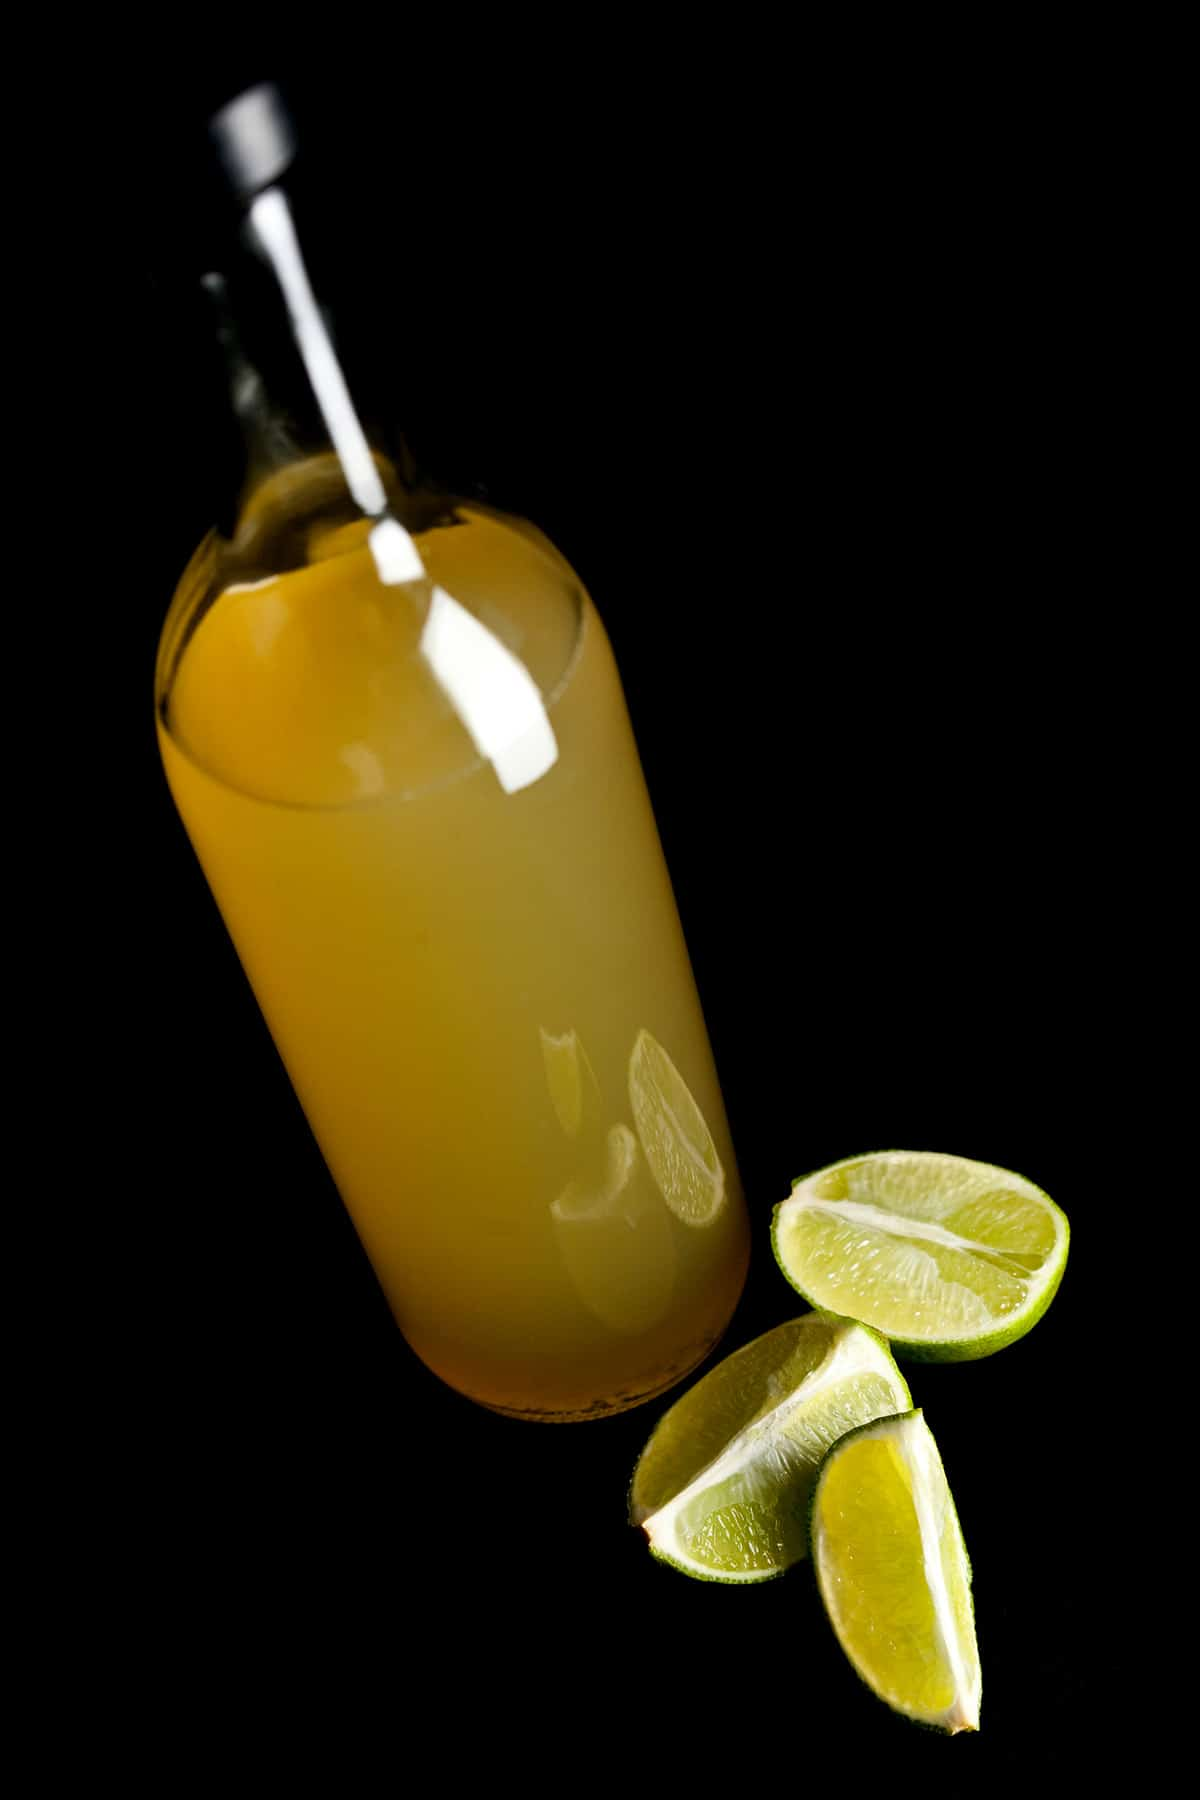 A bottle of homemade sour mix, with sliced limes at its base.